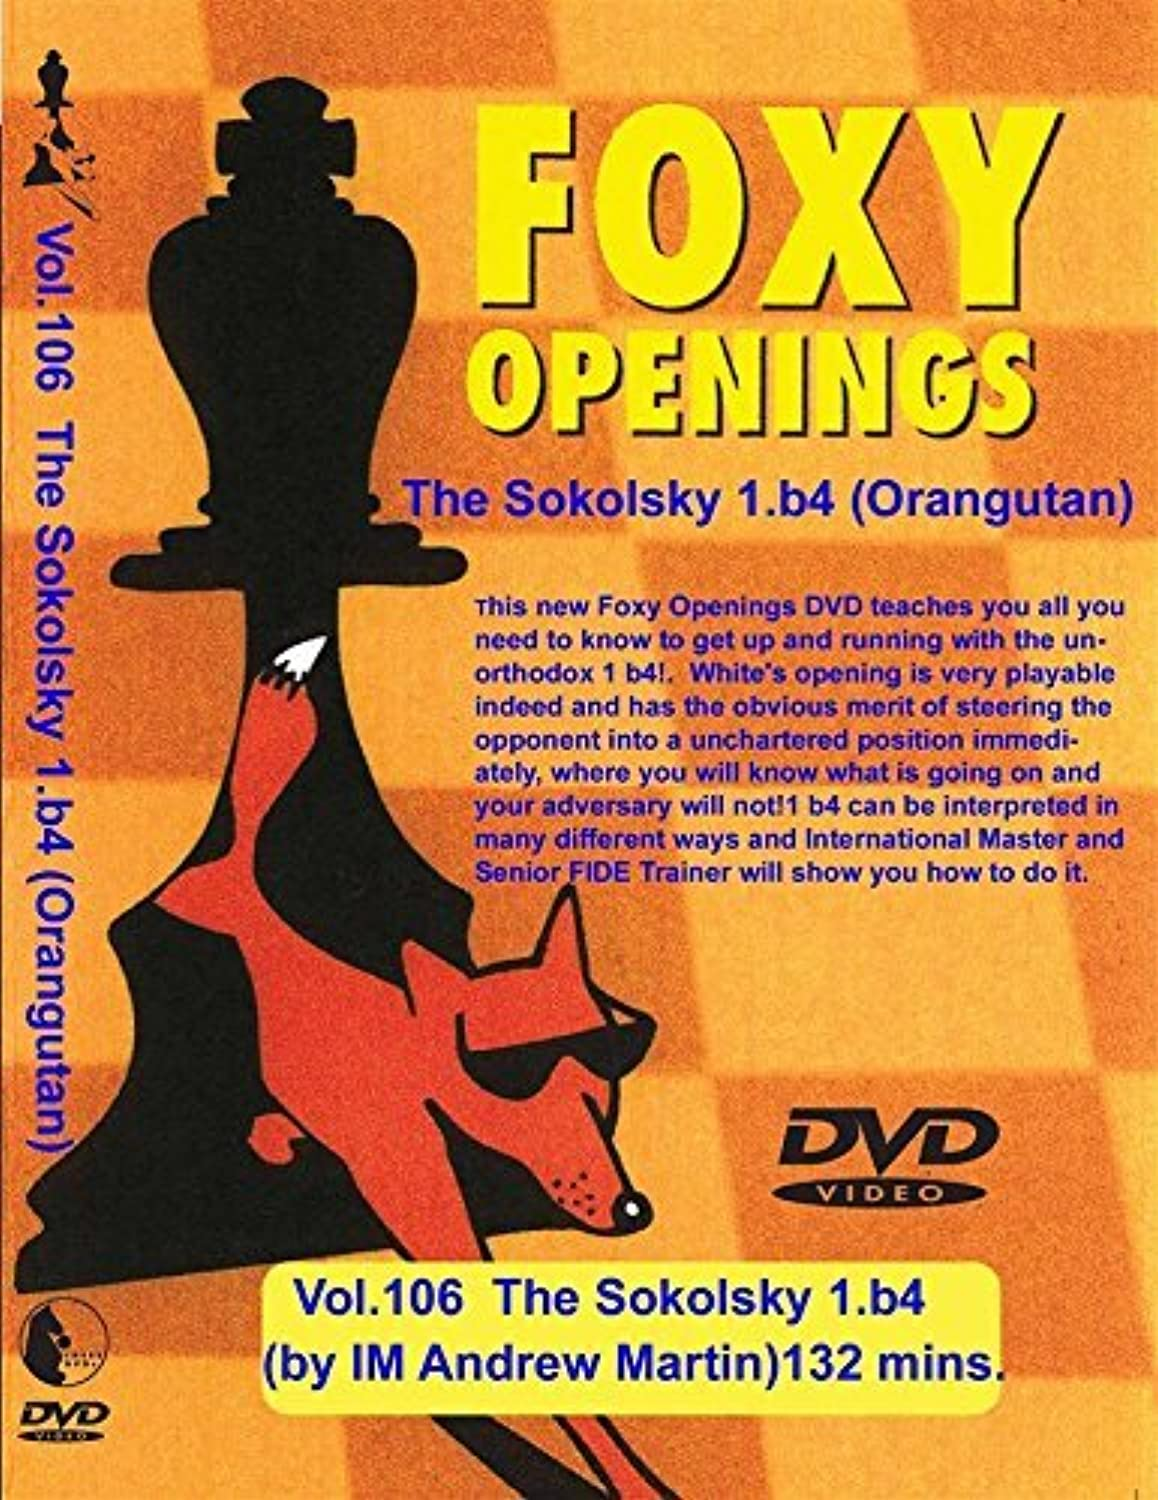 FOXY OPENINGS - VOLUME 106 - The Sokolsky Opening - 1.b4 by  The House of Staunton, Inc.